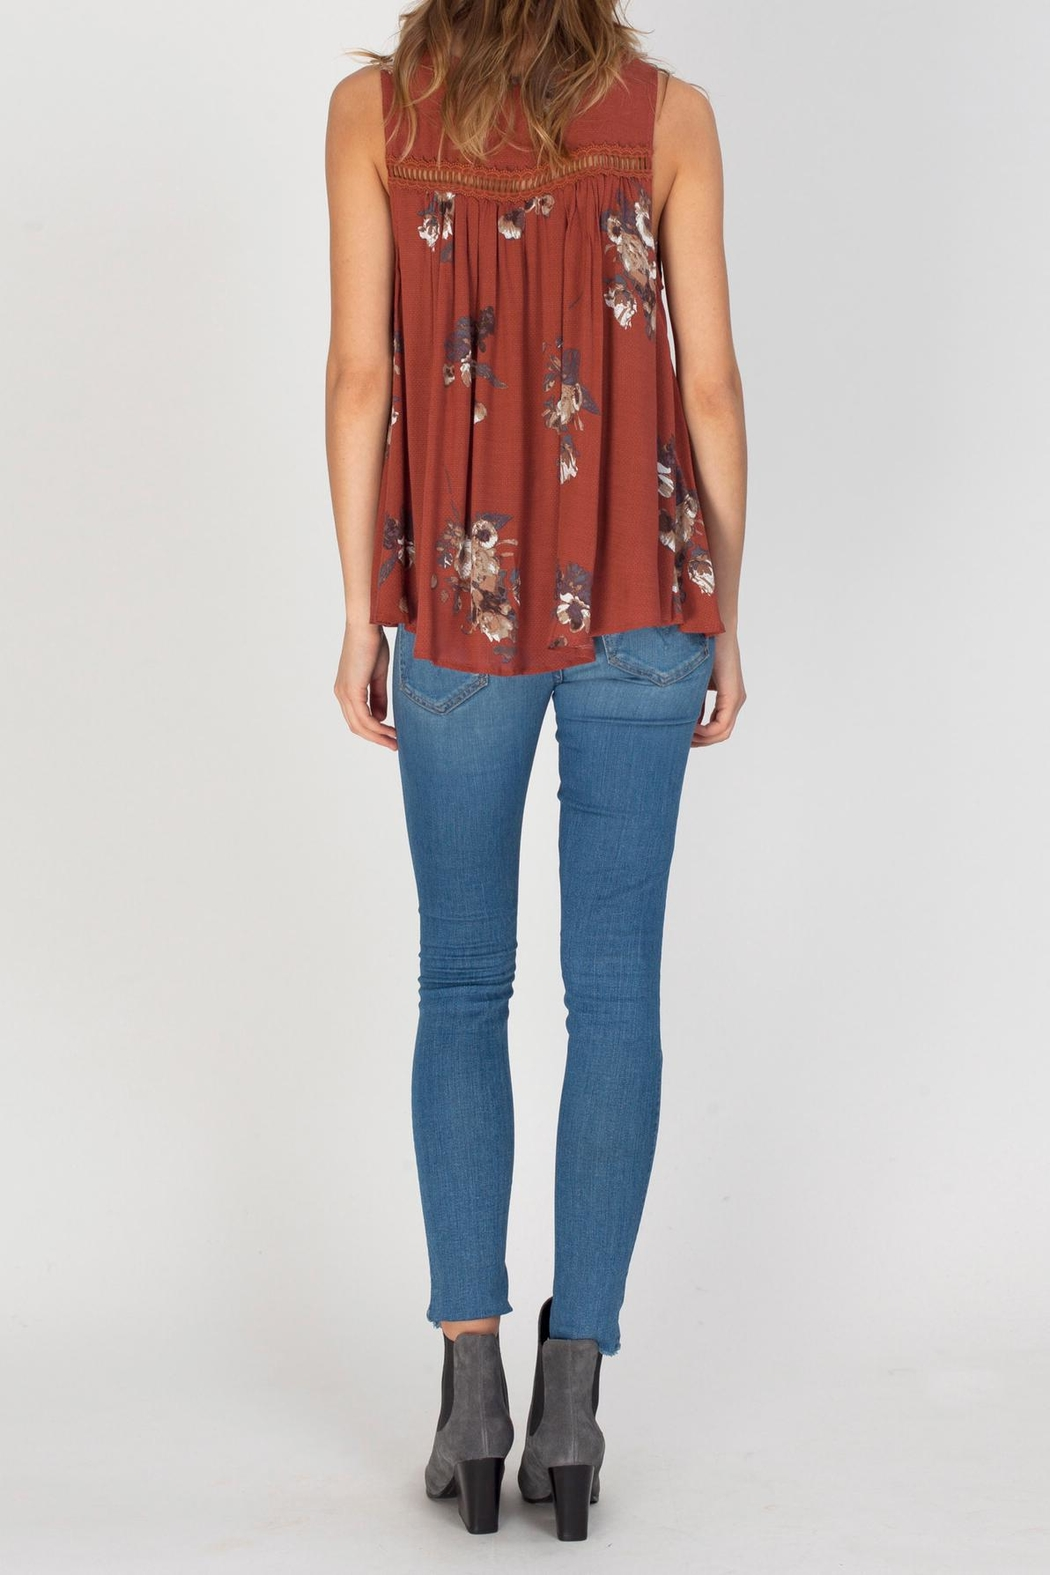 Gentle Fawn Clara-Copper Floral Top - Side Cropped Image